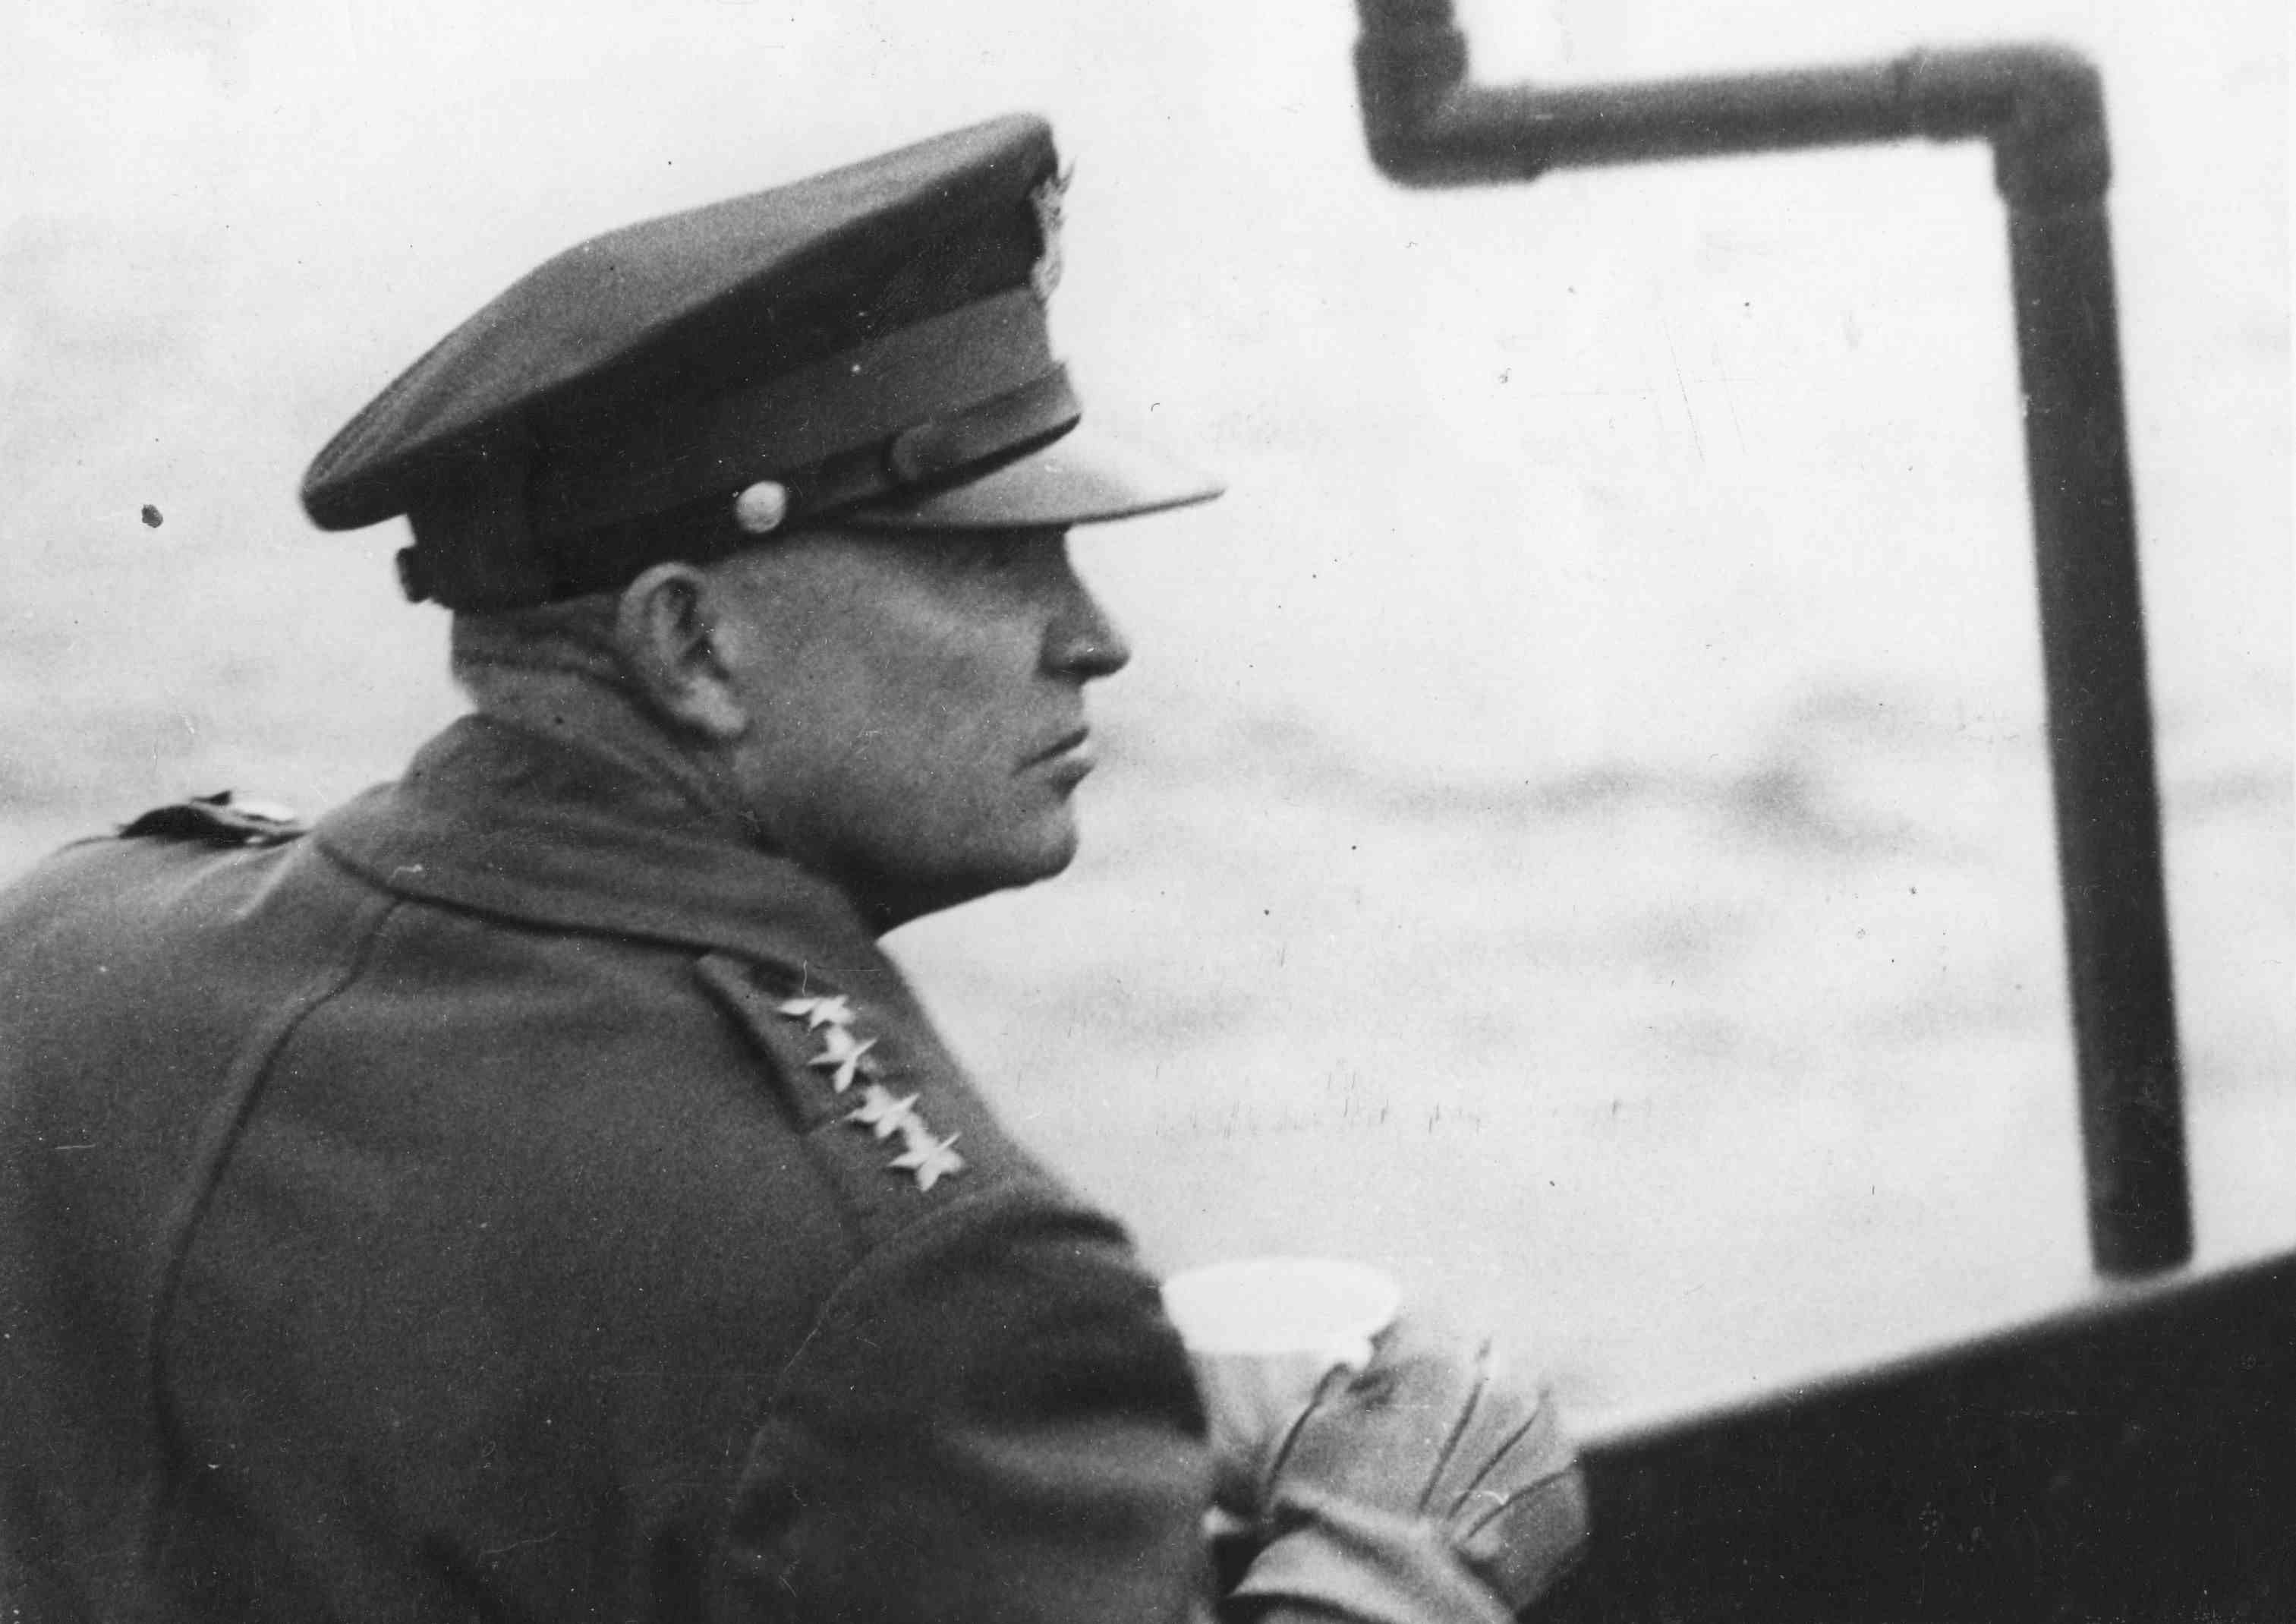 General Dwight D Eisenhower (1890 - 1969), Supreme Commander of the Allied Forces, watches the Allied landing operations from the deck of a warship in the English Channel during World War II, June 1944. Eisenhower was later elected the 34th President of the United States